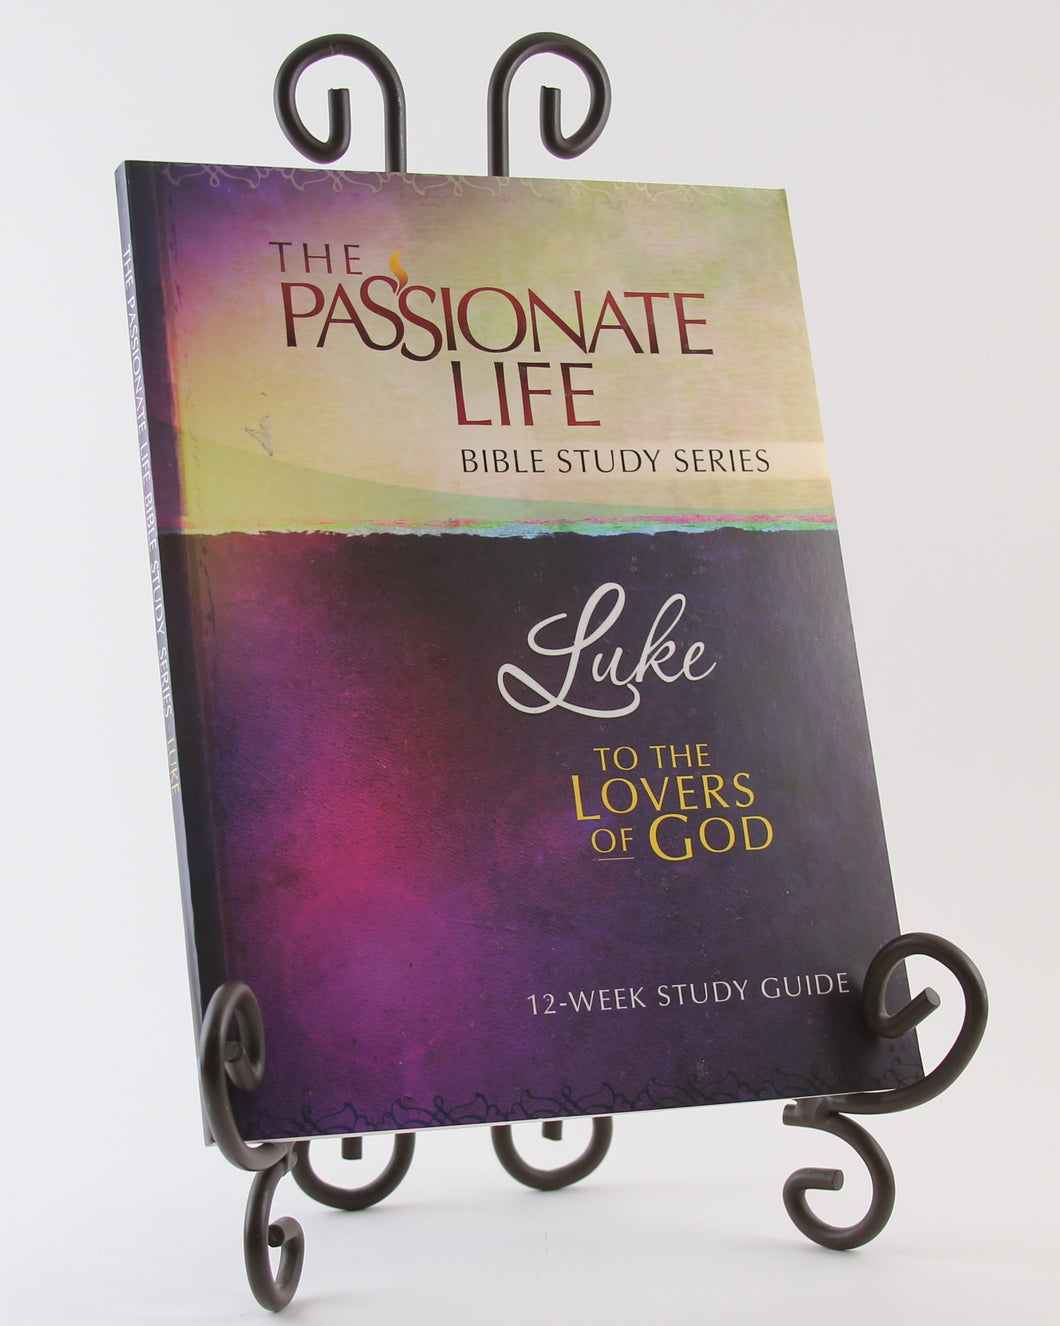 Luke: To The Lovers Of God 12-Week Study Guide (The Passionate Life Bible Study Series) Paperback